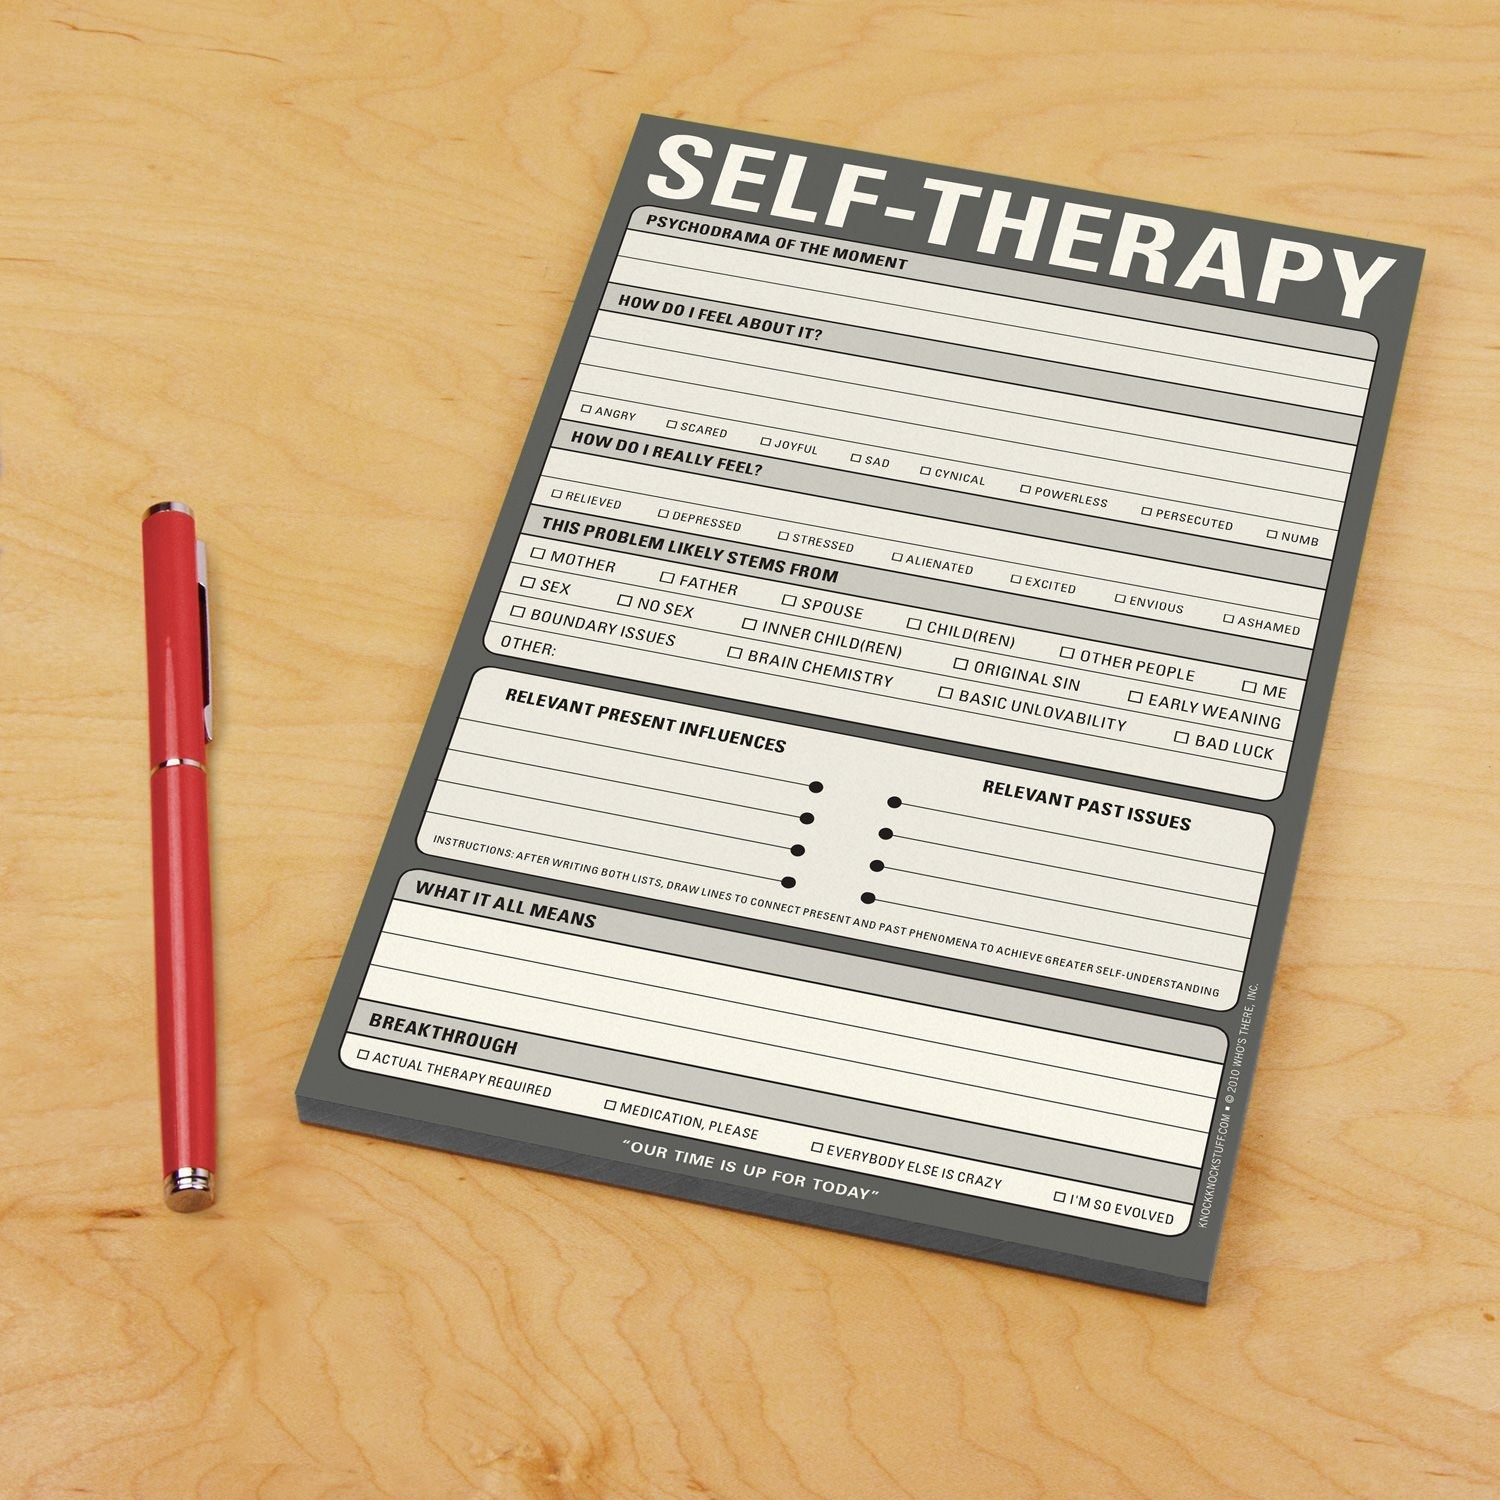 """Promising review: """"In all seriousness, I work in a stressful environment that brings up all kinds of issues. Dealing with...interesting coworkers can be trying. I bought this self-therapy pad as a joke. However, when troubling things happen here, I've found them to be genuinely helpful in dealing with it so that I don't get too upset. Whether you need this as a joke or for your own serious use, I recommend it."""" —Dr. BraxyGet it from Amazon or Walmart for $7.11."""